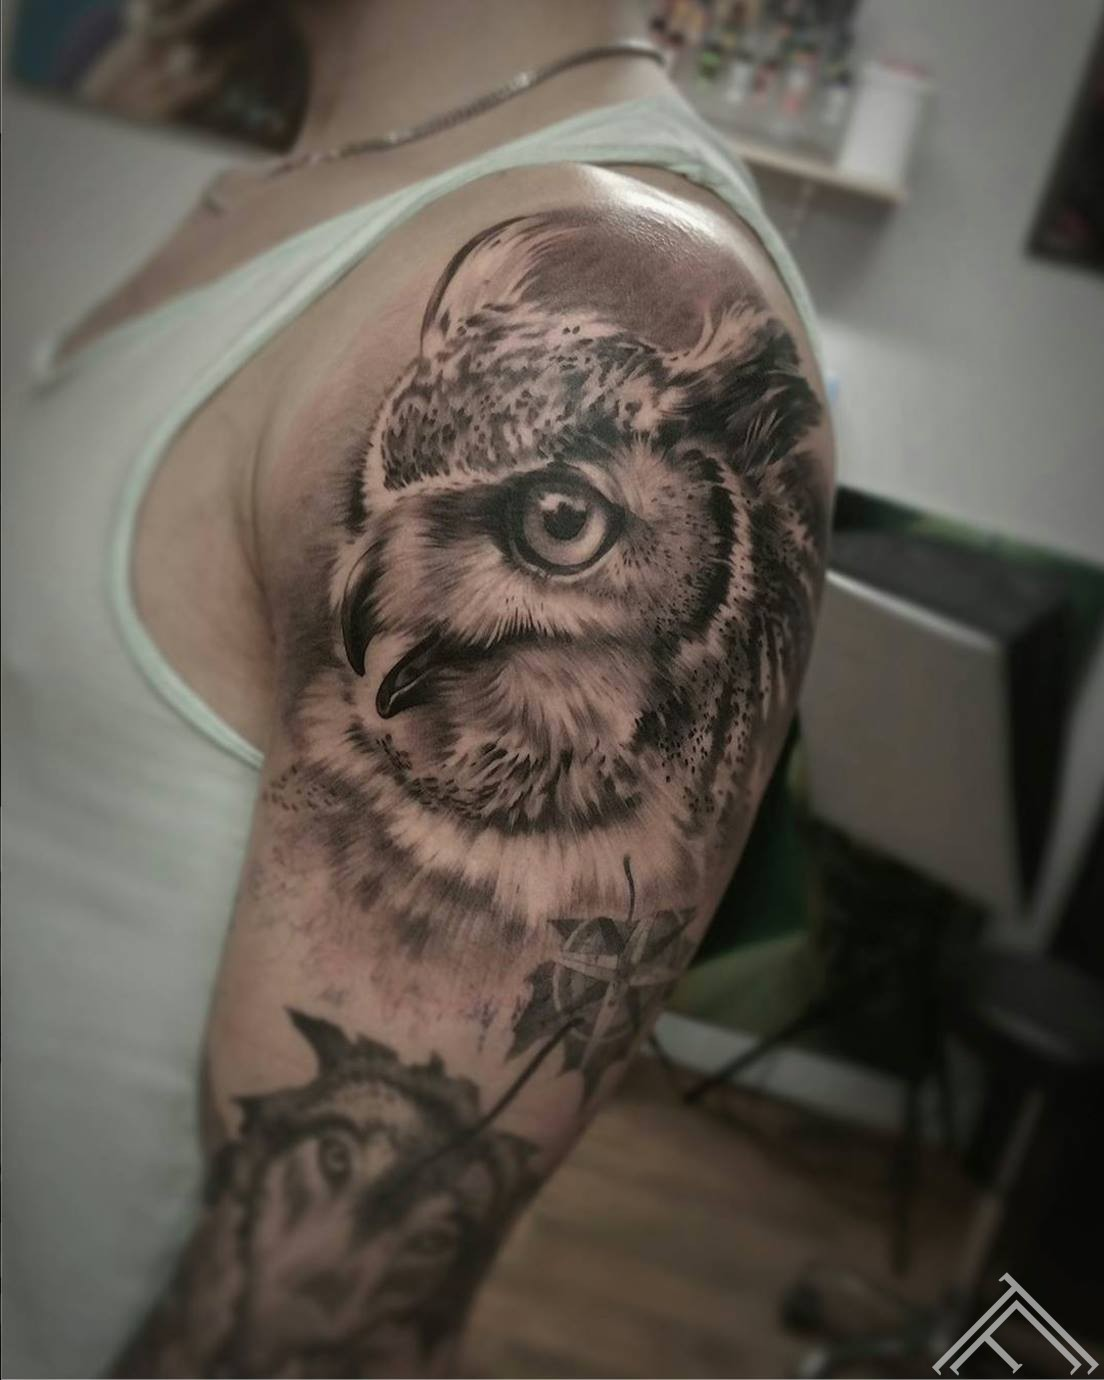 puce-owl-tattoo-tetovejums-tattoofrequency-riga-janissvars